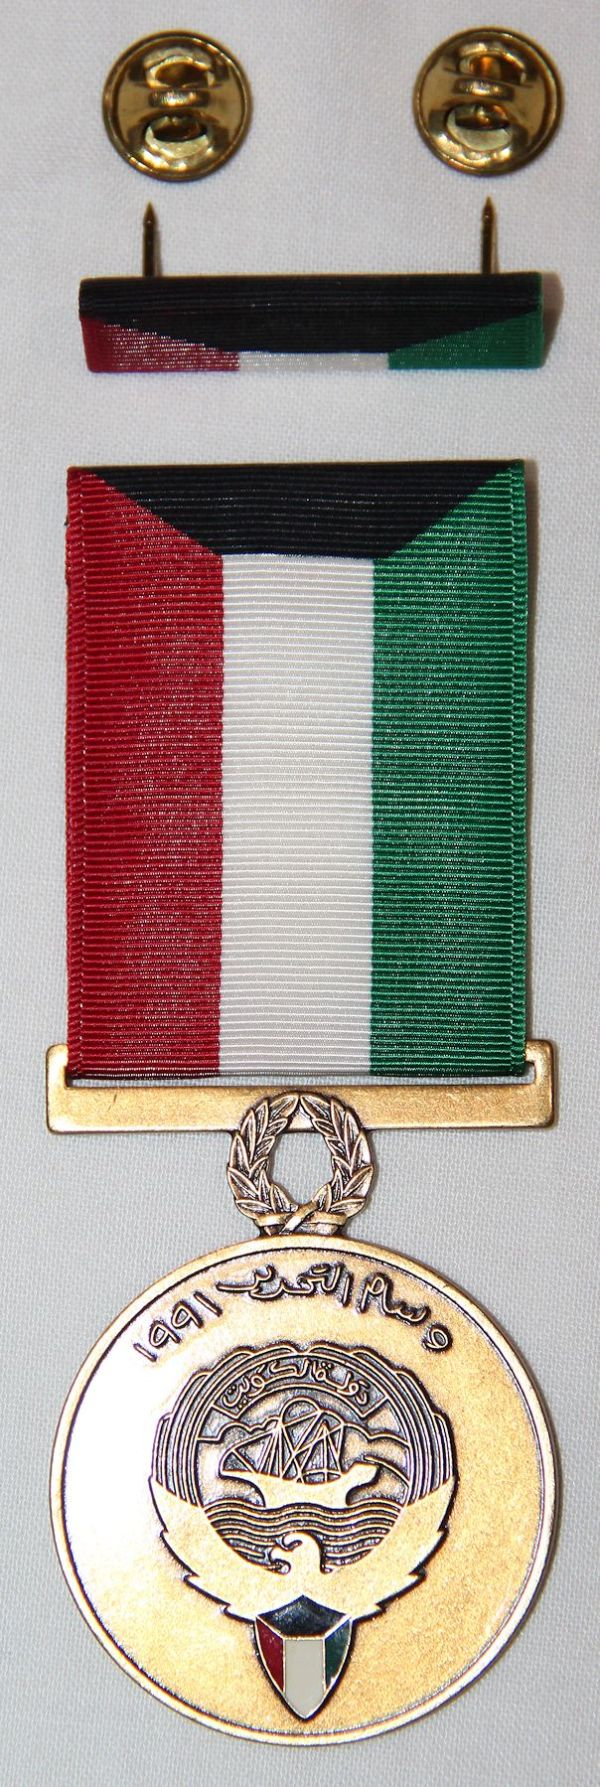 U022. DESERT STORM KUWAIT LIBERATION MEDAL AND RIBBON BAR